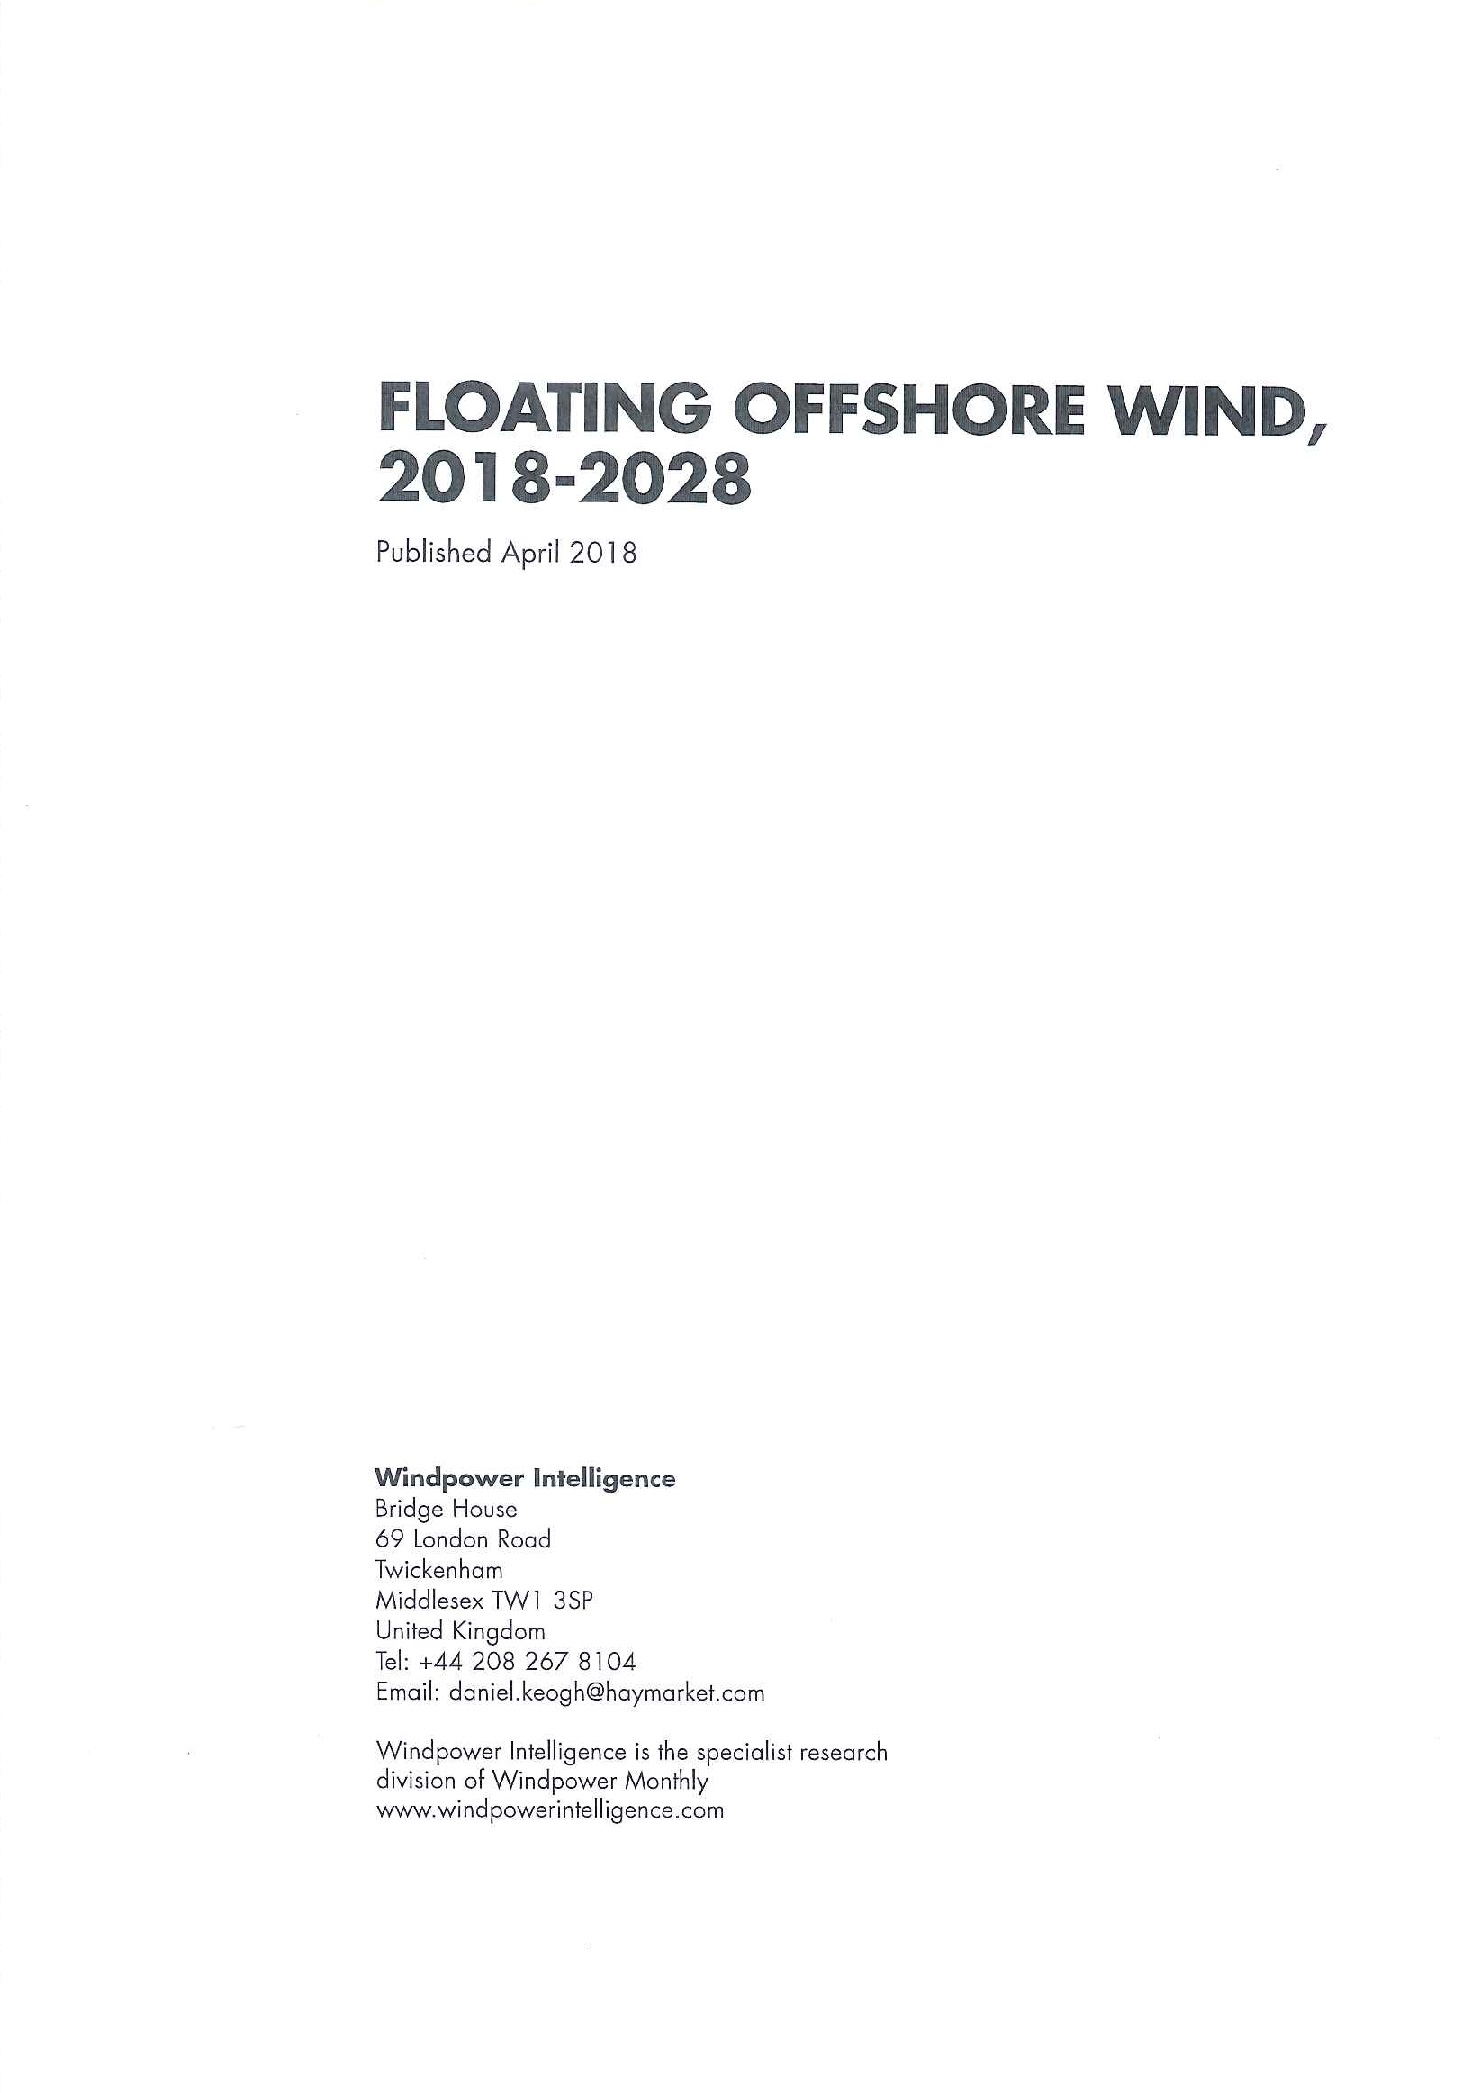 Floating offshore wind [e-book].2018-2028